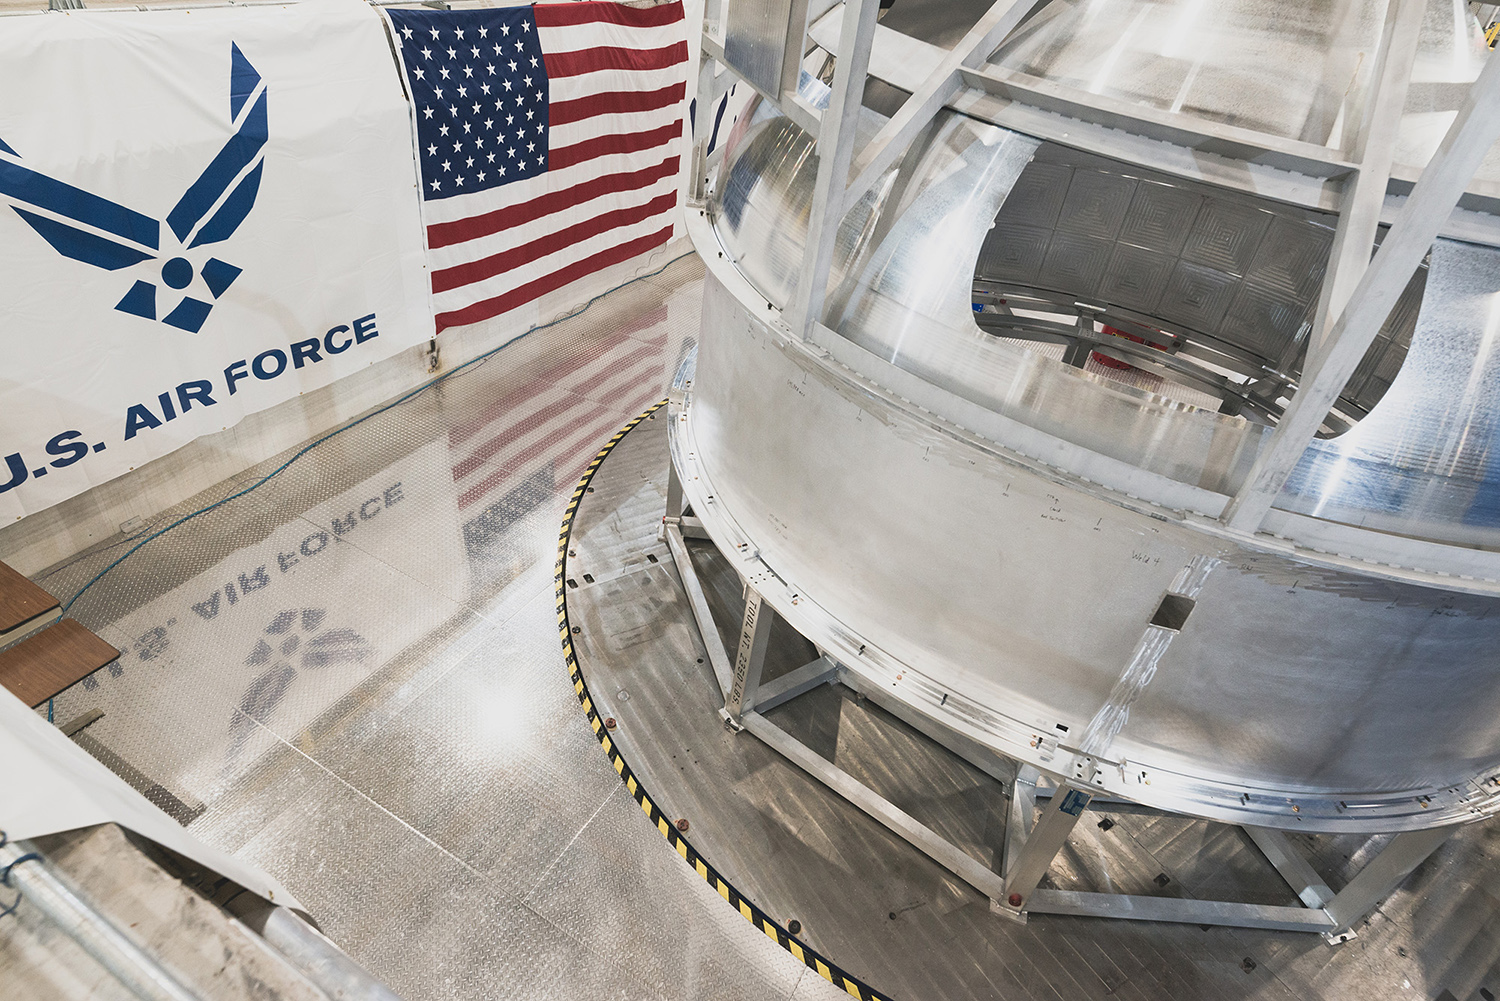 OmegA partner Vivace manufactures a pathfinder cryogenic fuel tank using the latest friction stir welding technology at NASA's Michoud Assembly Facility. (November 2019)